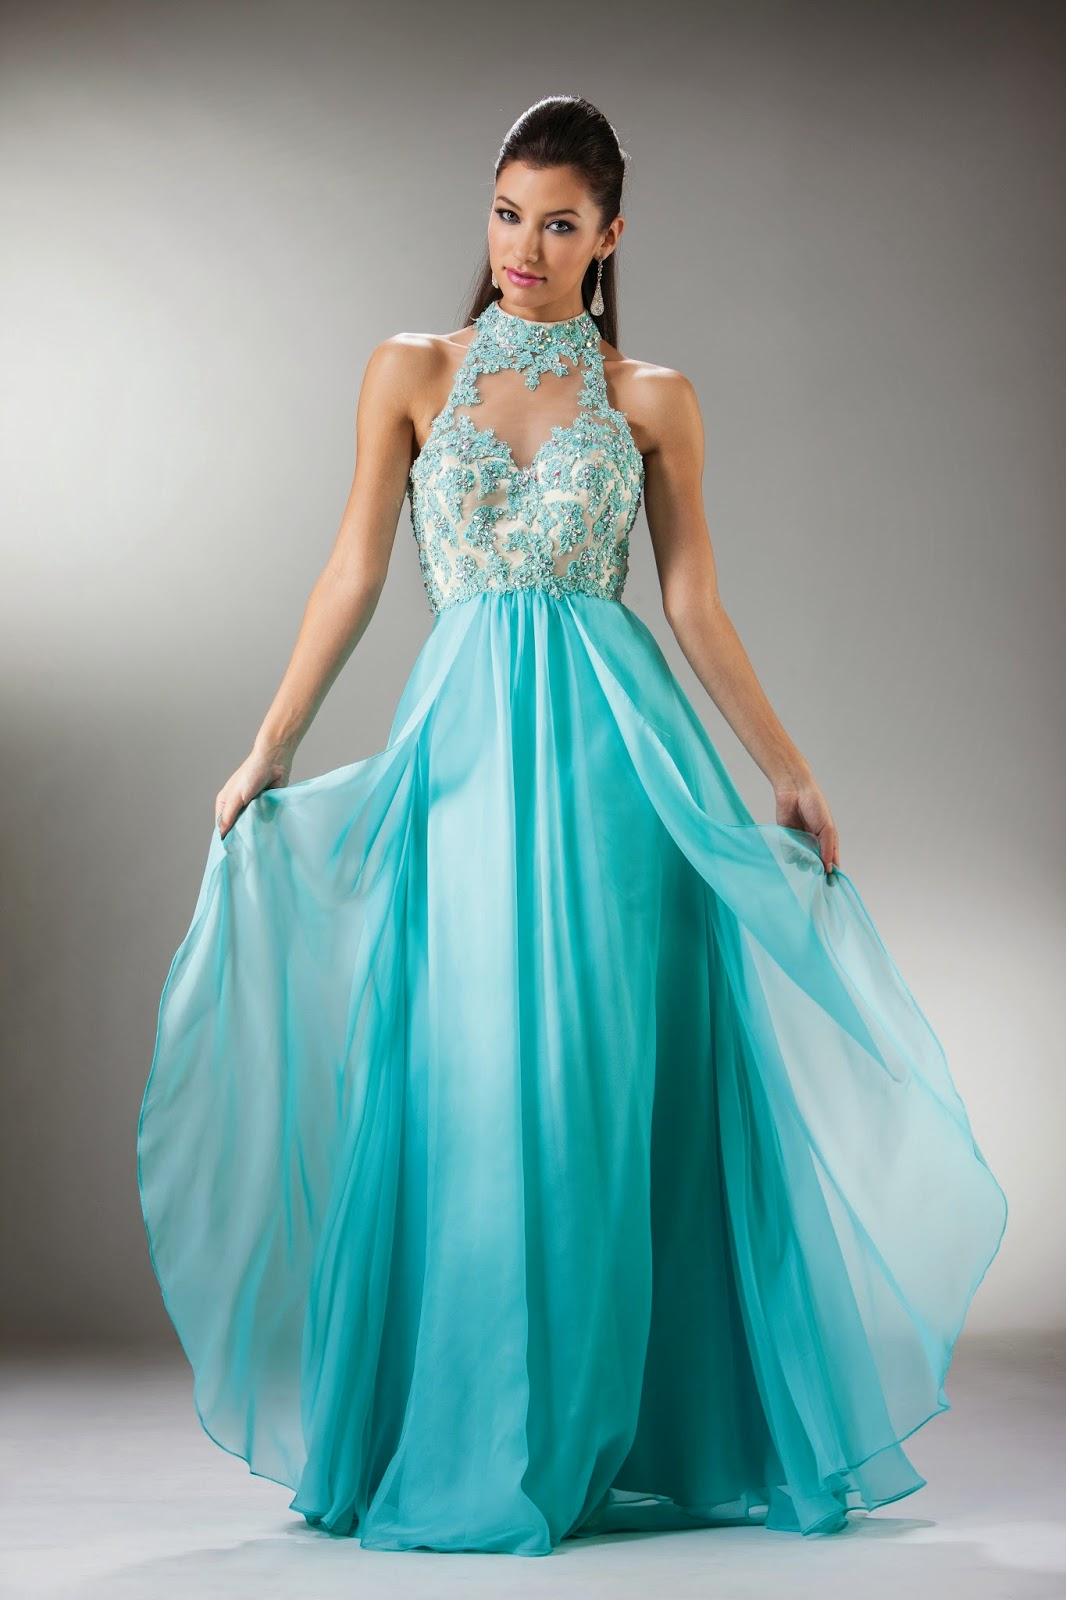 Dorable Teal And Gold Bridesmaid Dresses Festooning - Wedding Dress ...